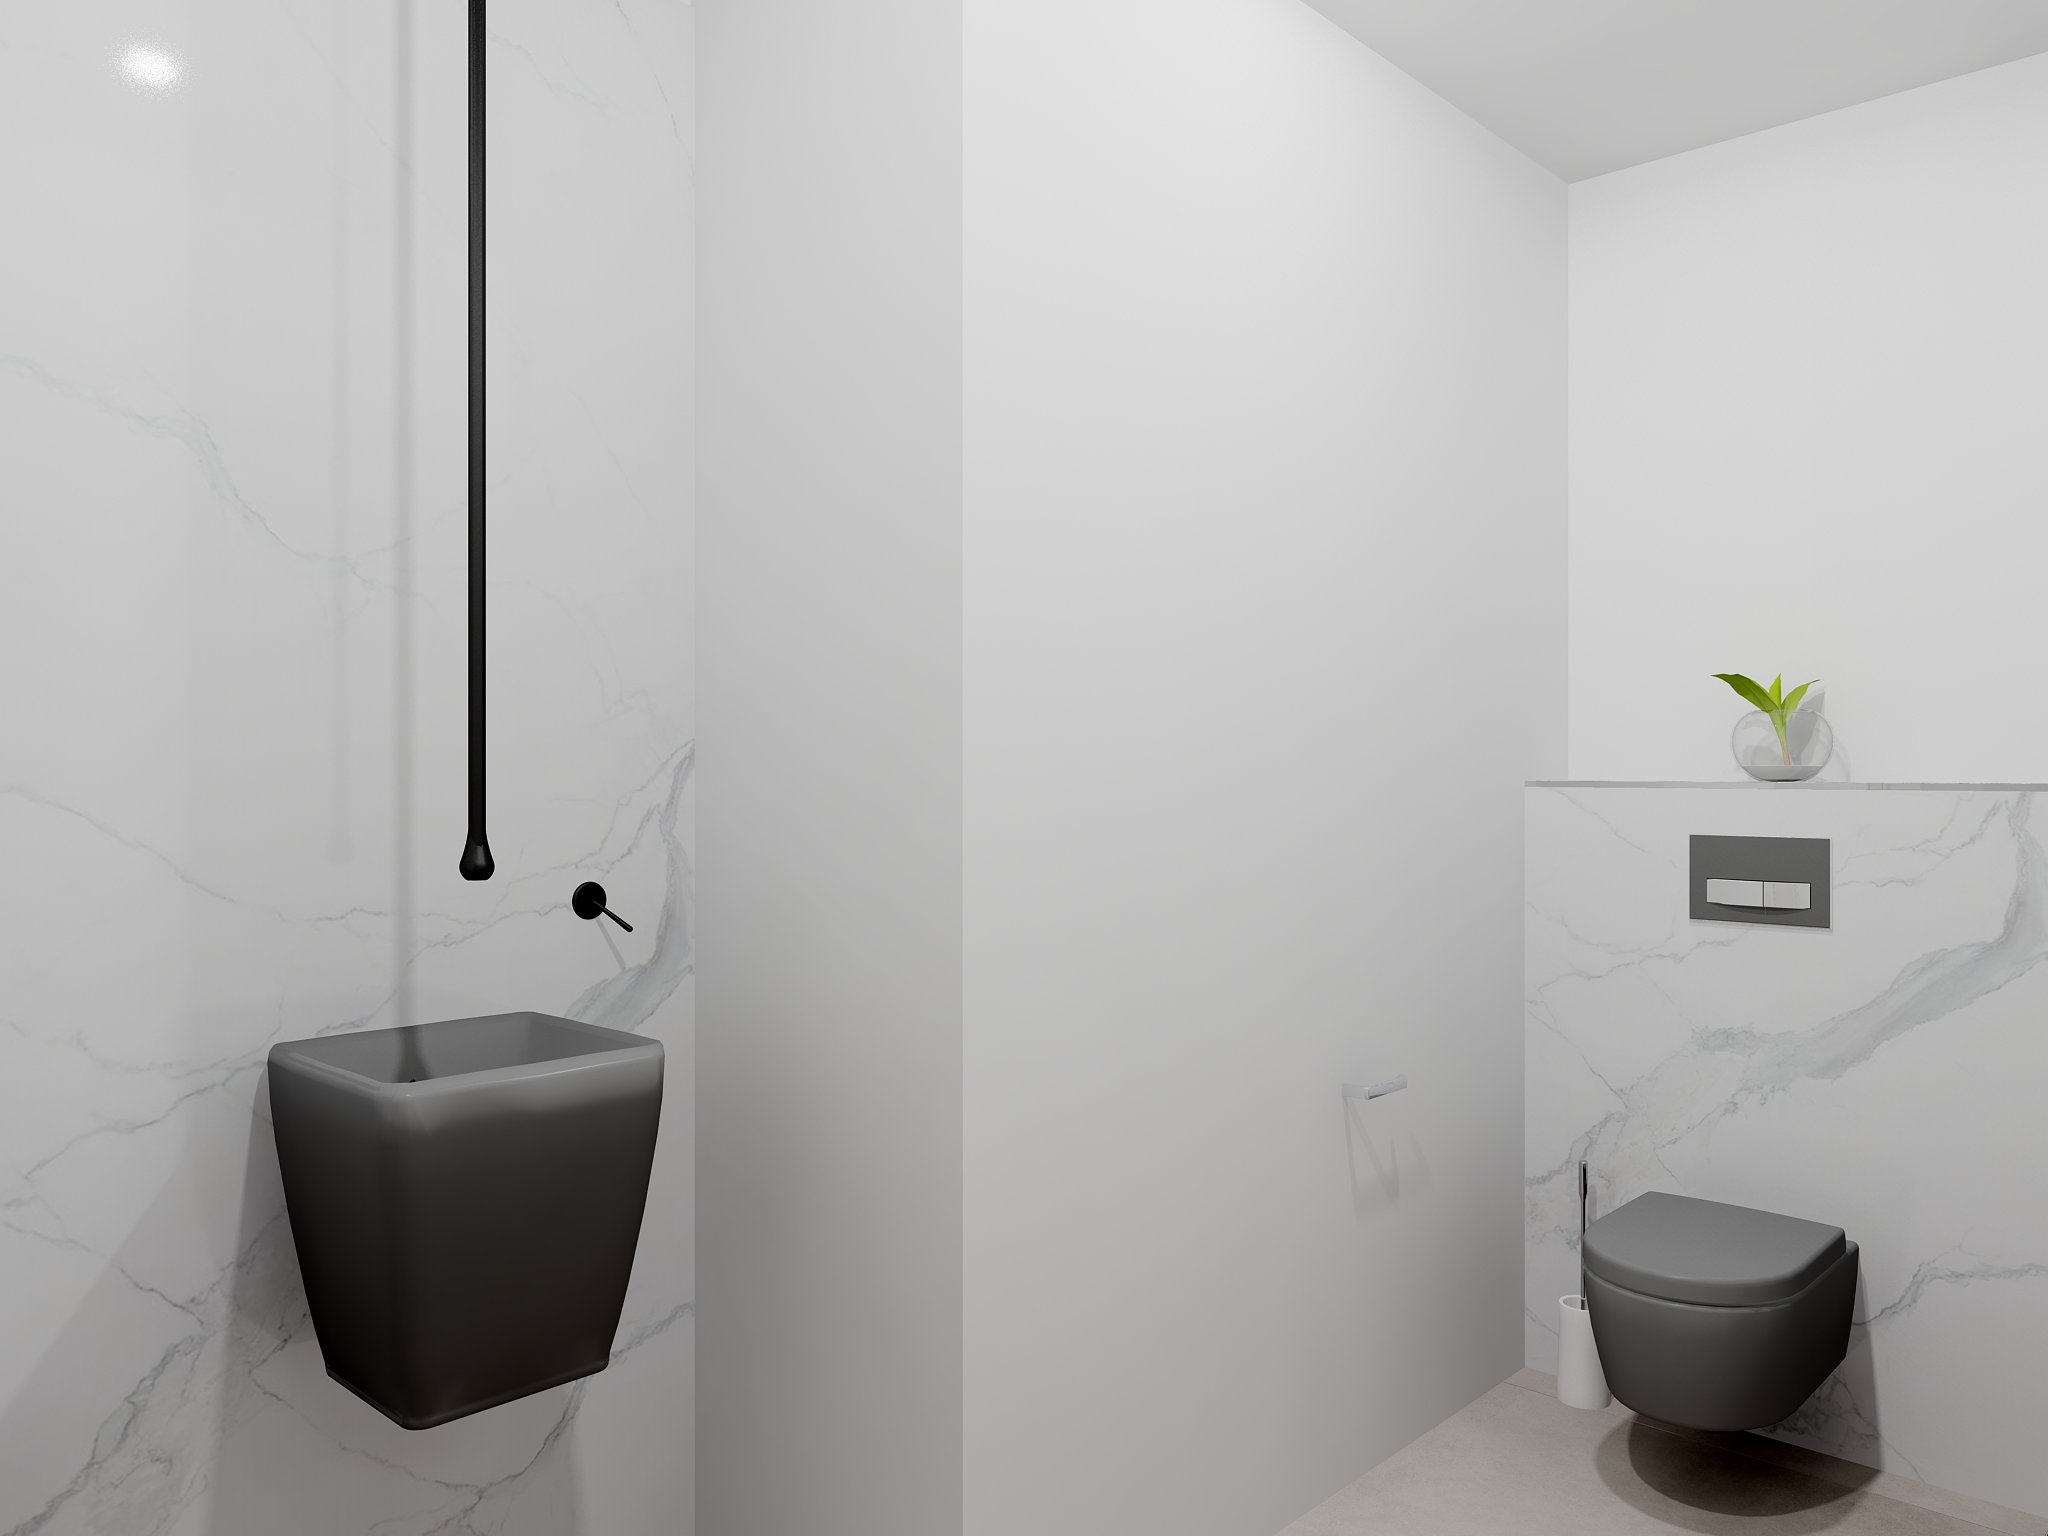 Mattout Carrelage WC INVITES V1 2 Bathroom By Mattout Carrelage ...